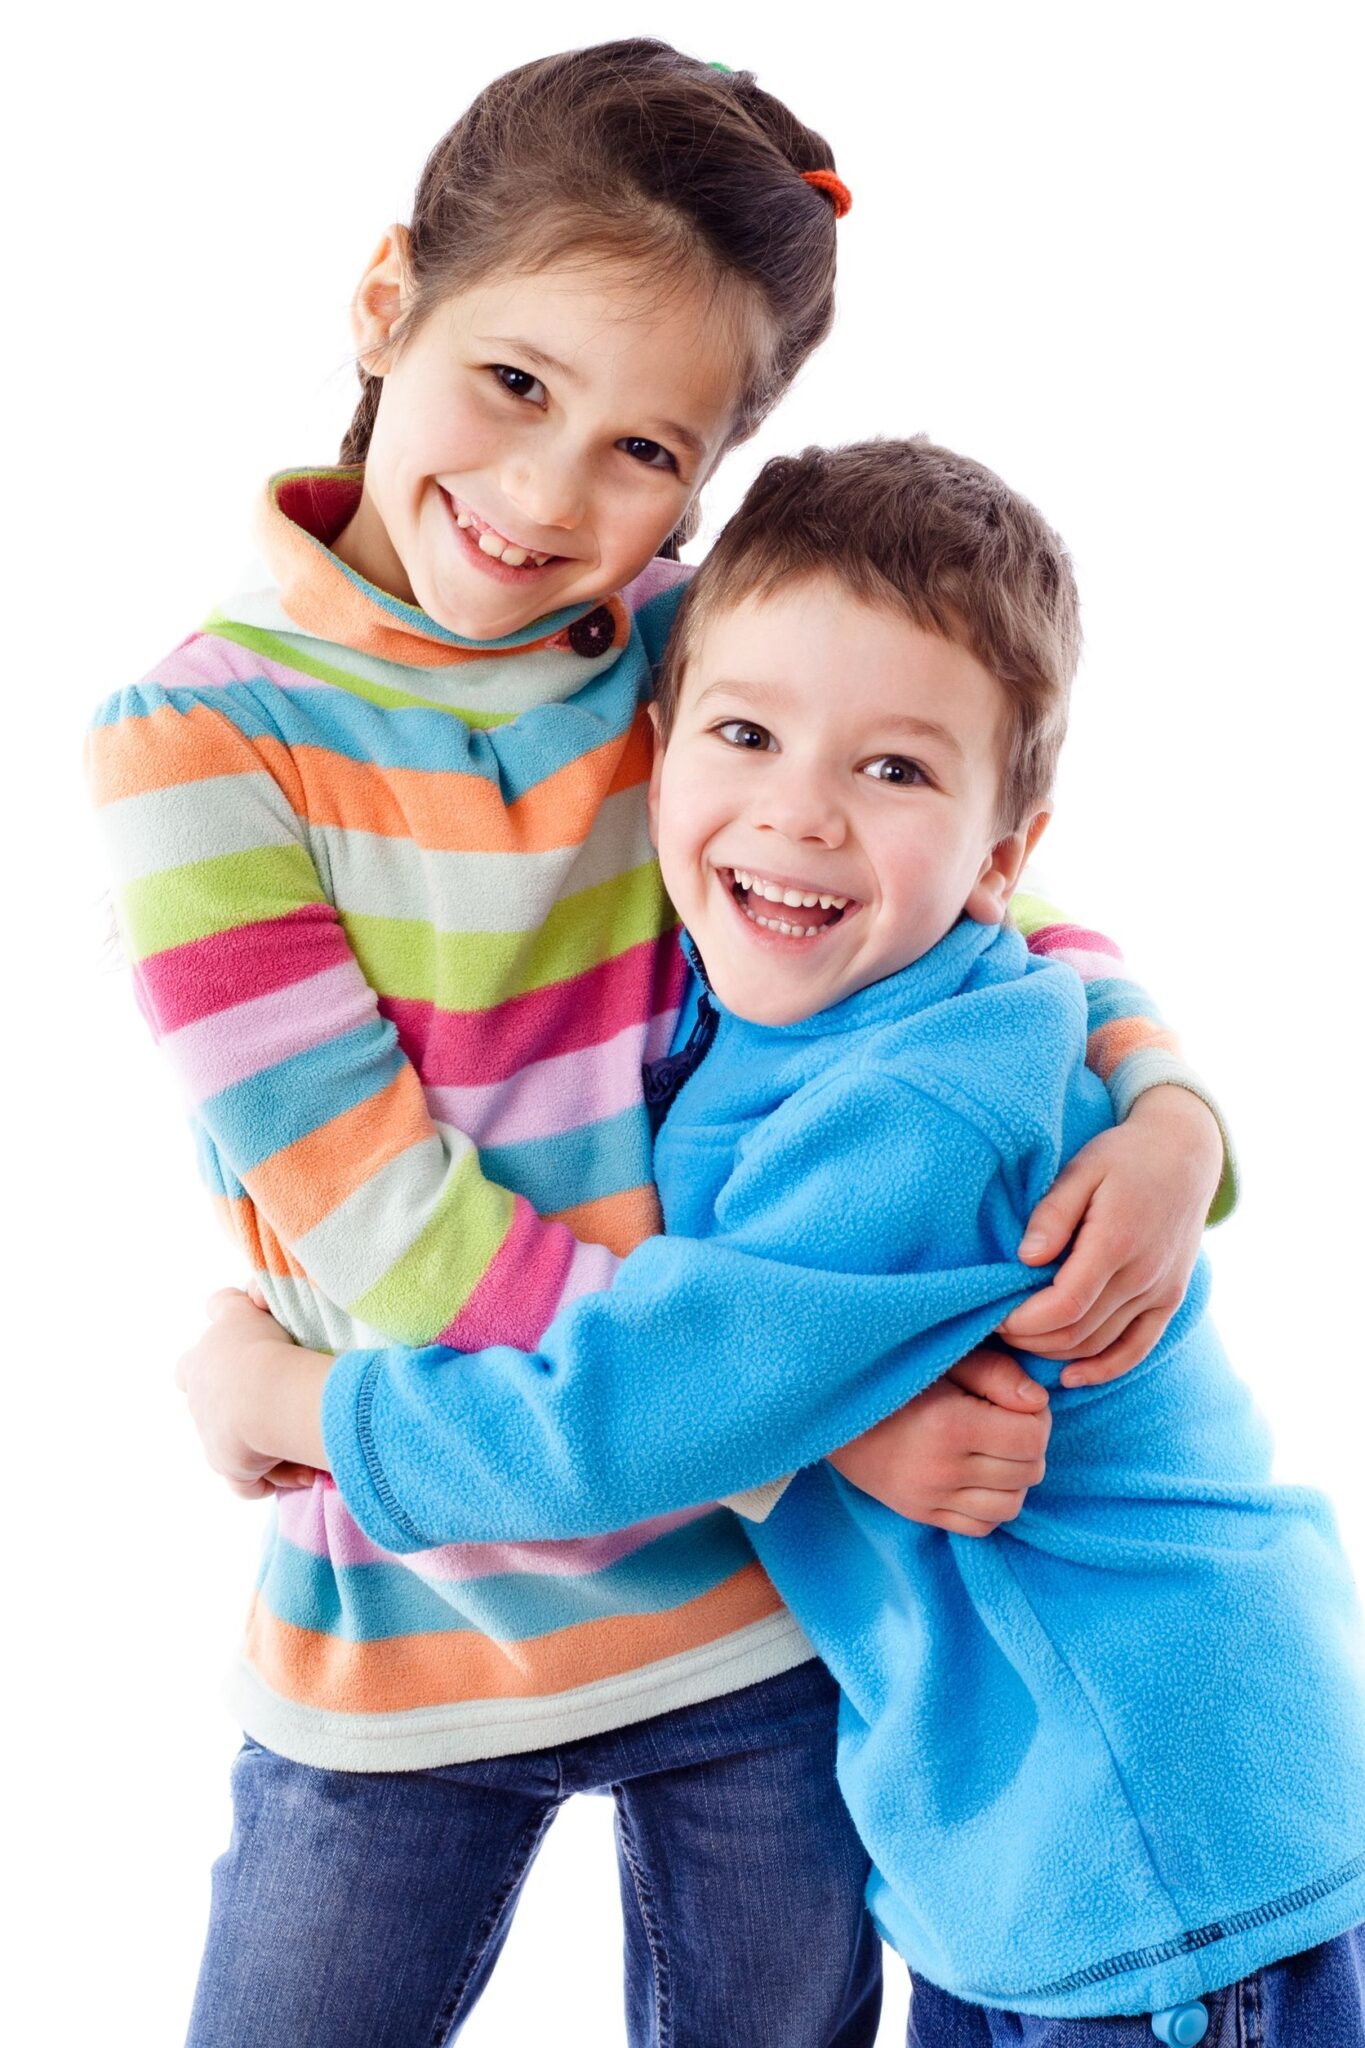 13708686 - two happy funny kids standing together and embracing, isolated on white